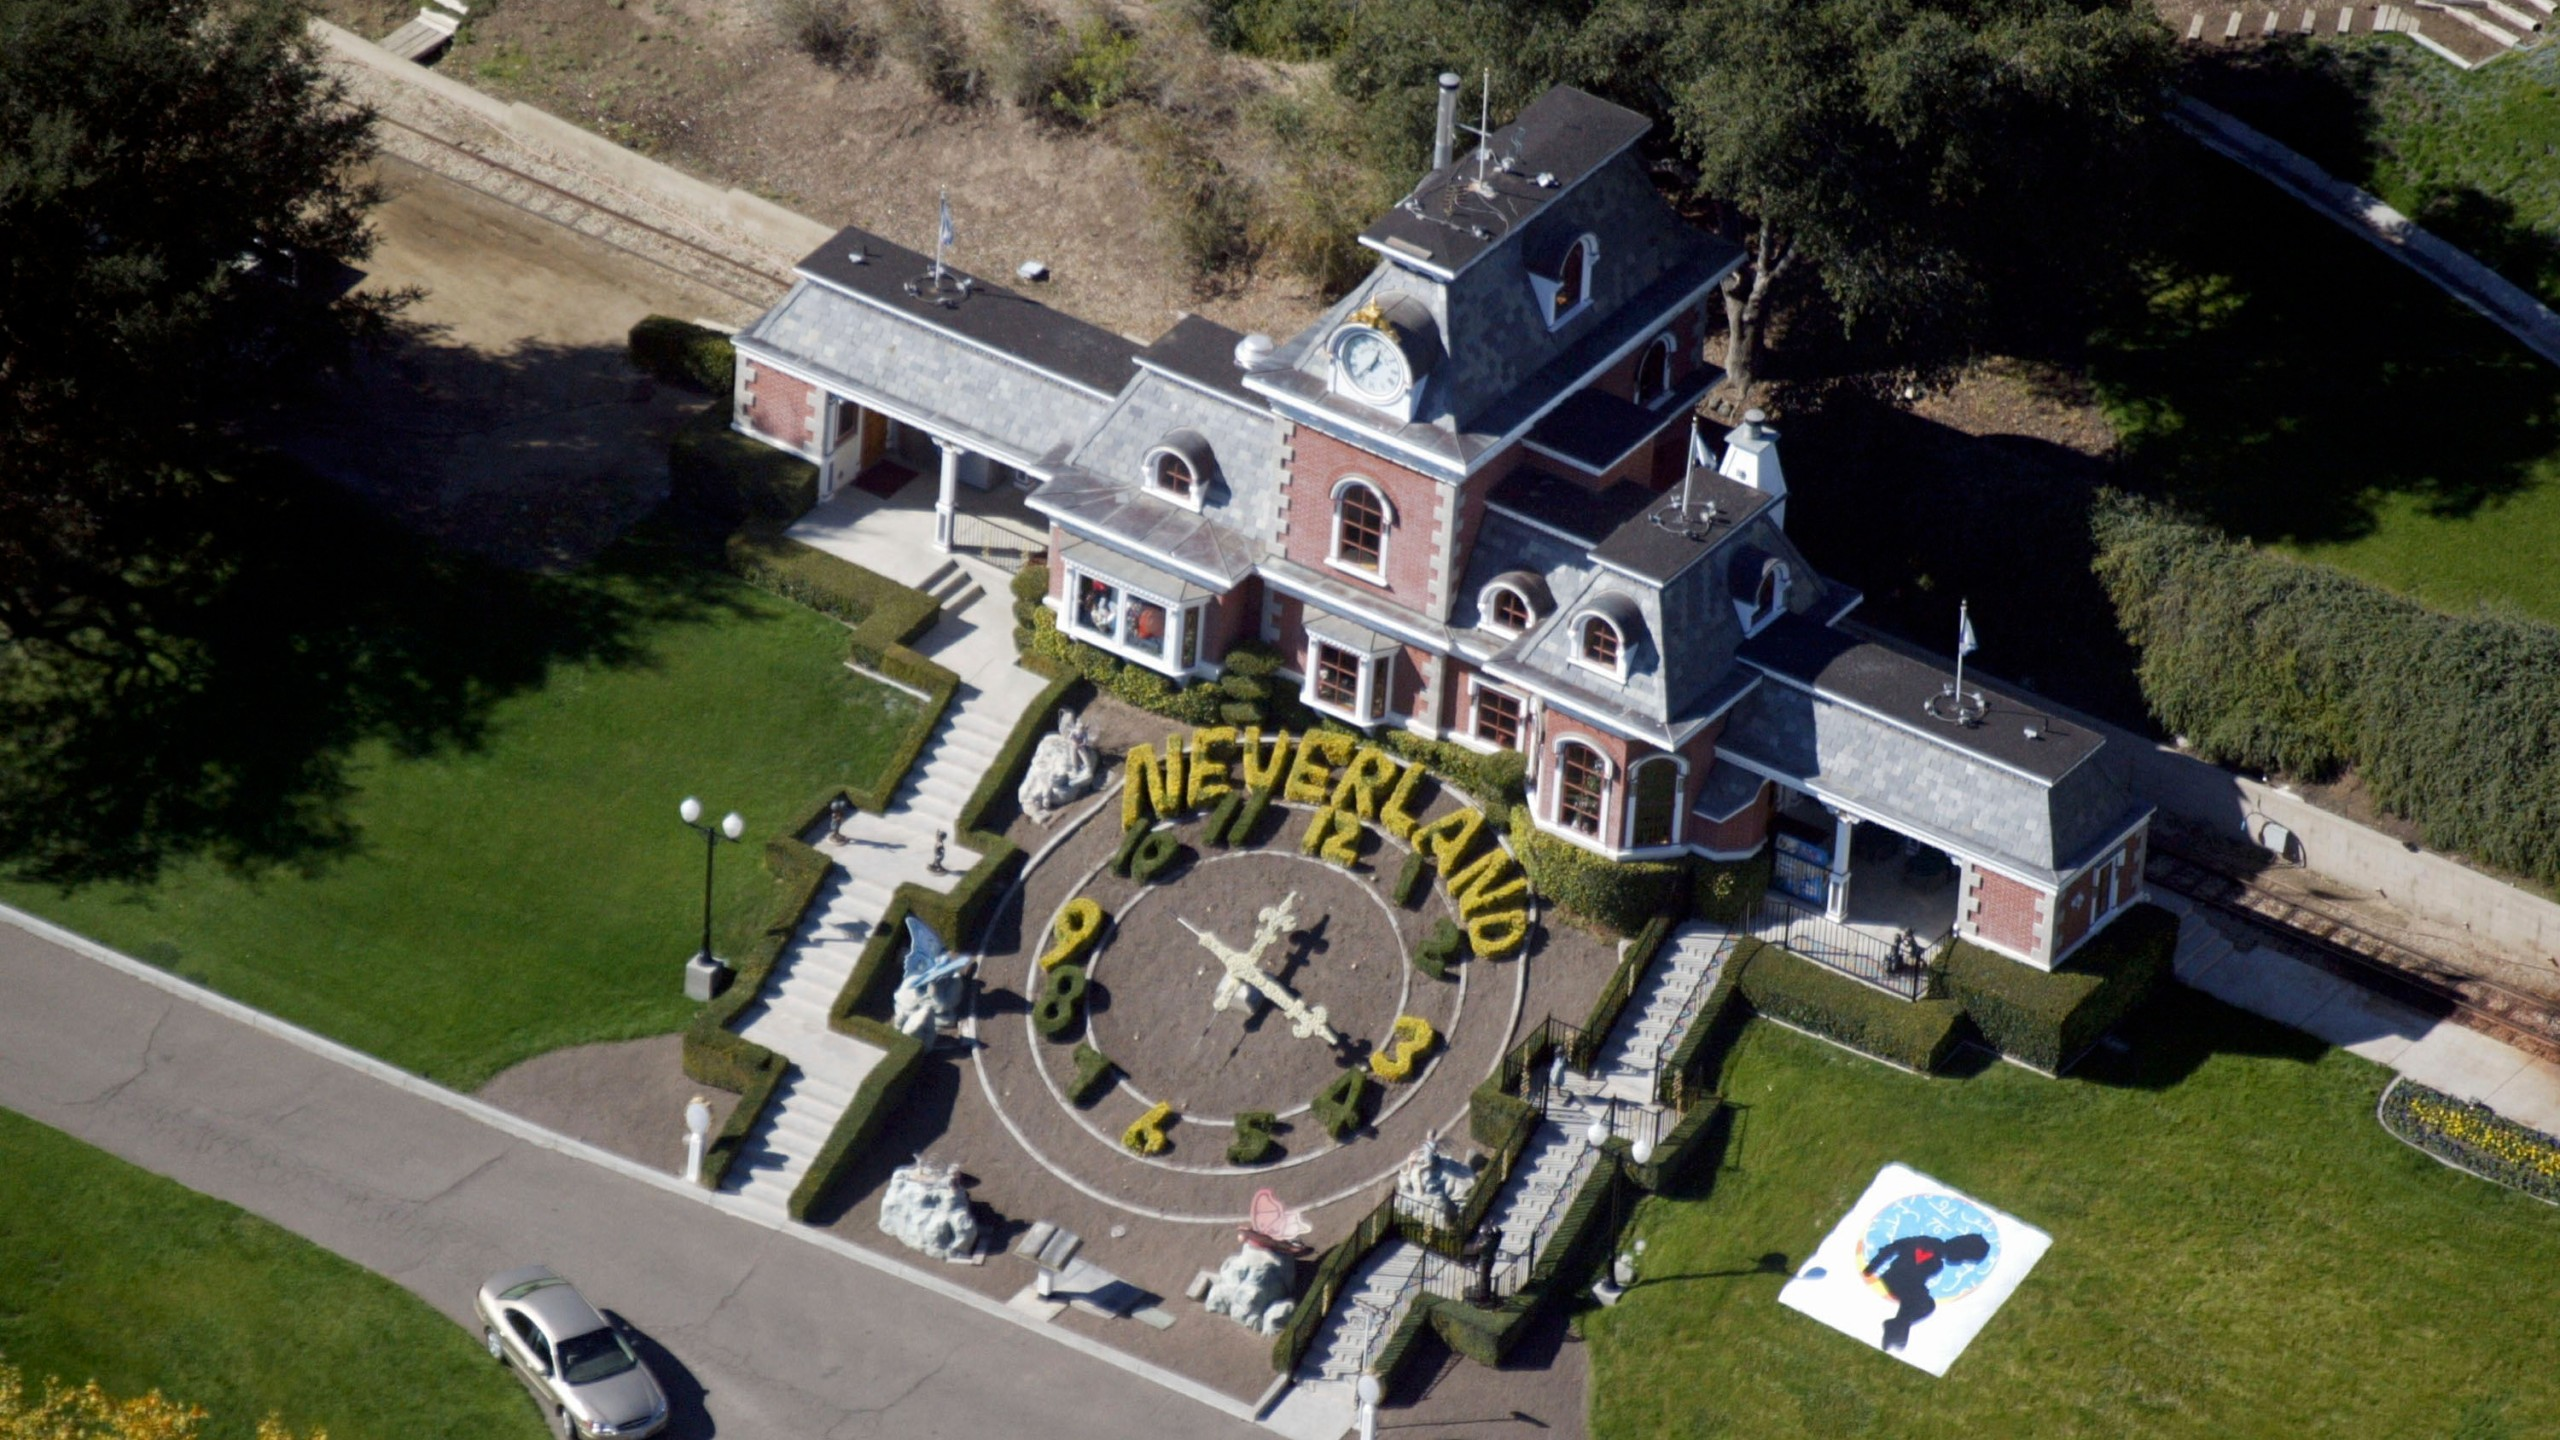 Michael Jackson's Neverland Ranch is shown November 18, 2003 outside of Santa Barbara, California. (Credit: Frazer Harrison/Getty Images)